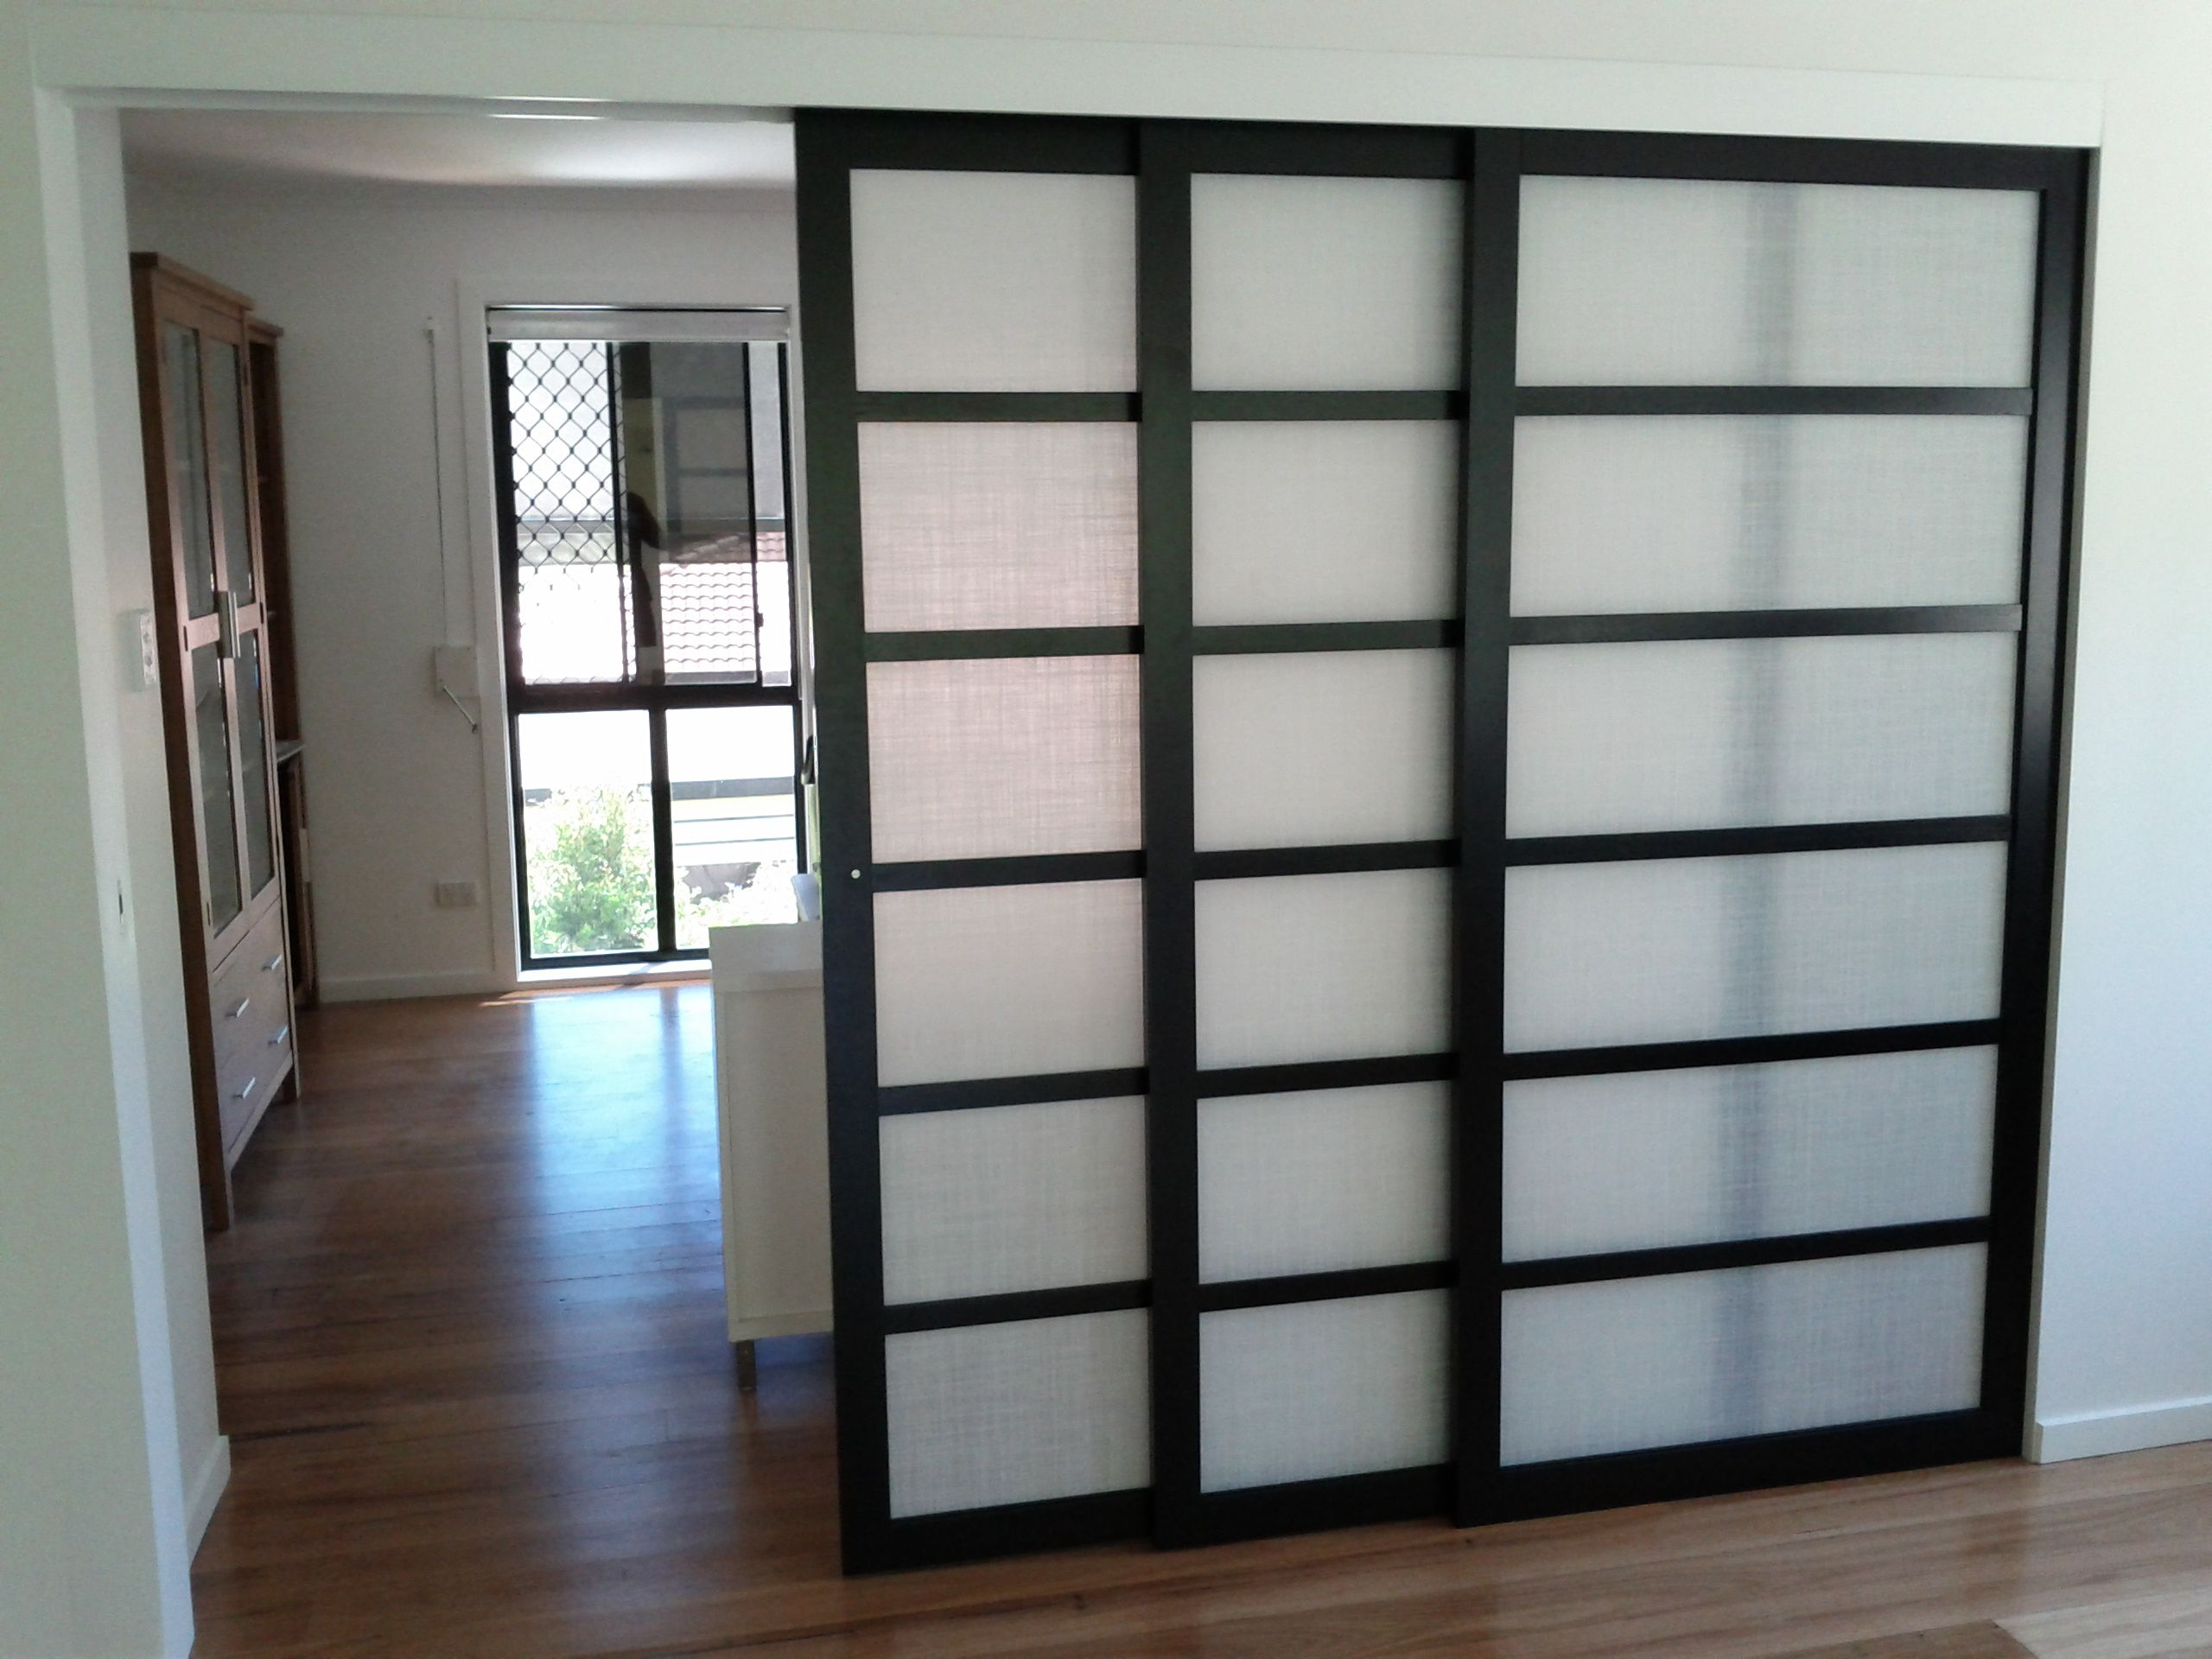 Sliding Japanese Doors And Room Dividers   Go To ChineseFurnitureShop.com  For Even More Amazing Furniture And Home Decoration Tips!